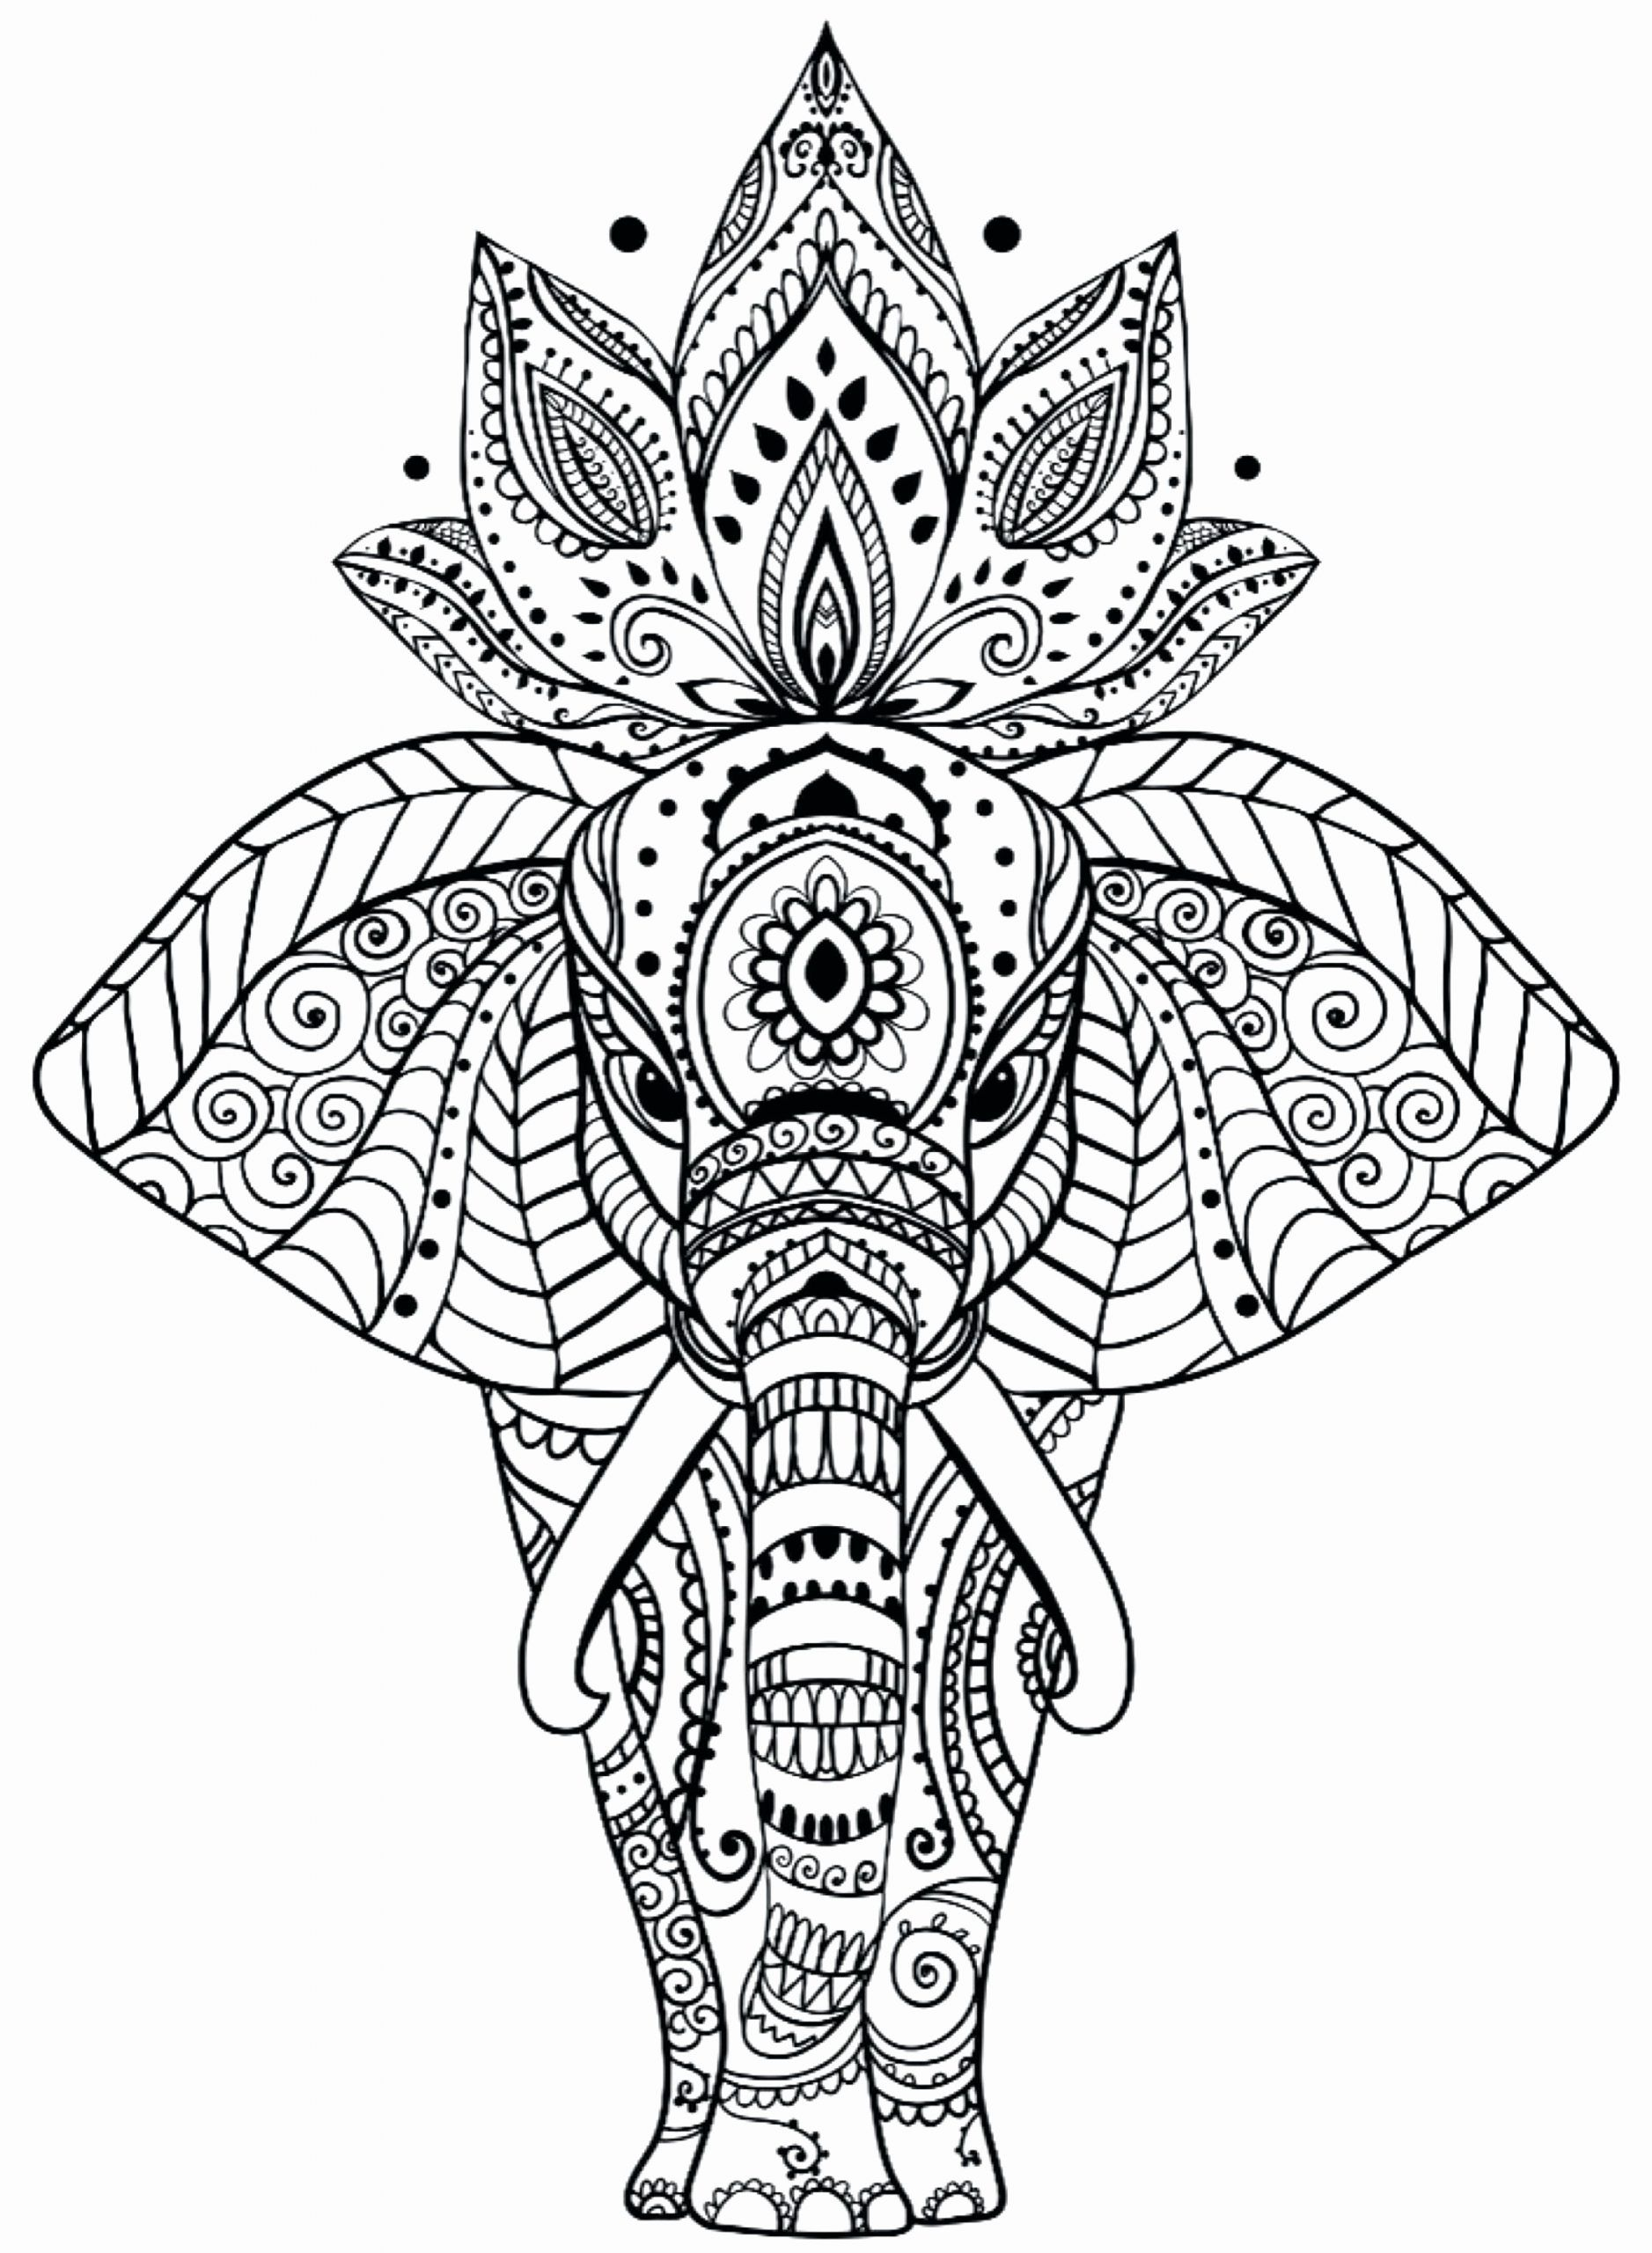 Animal Mandala Coloring Book Beautiful Animal Mandala Coloring Pages New Free Printable Home Mandala Coloring Pages Elephant Coloring Page Mandala Coloring